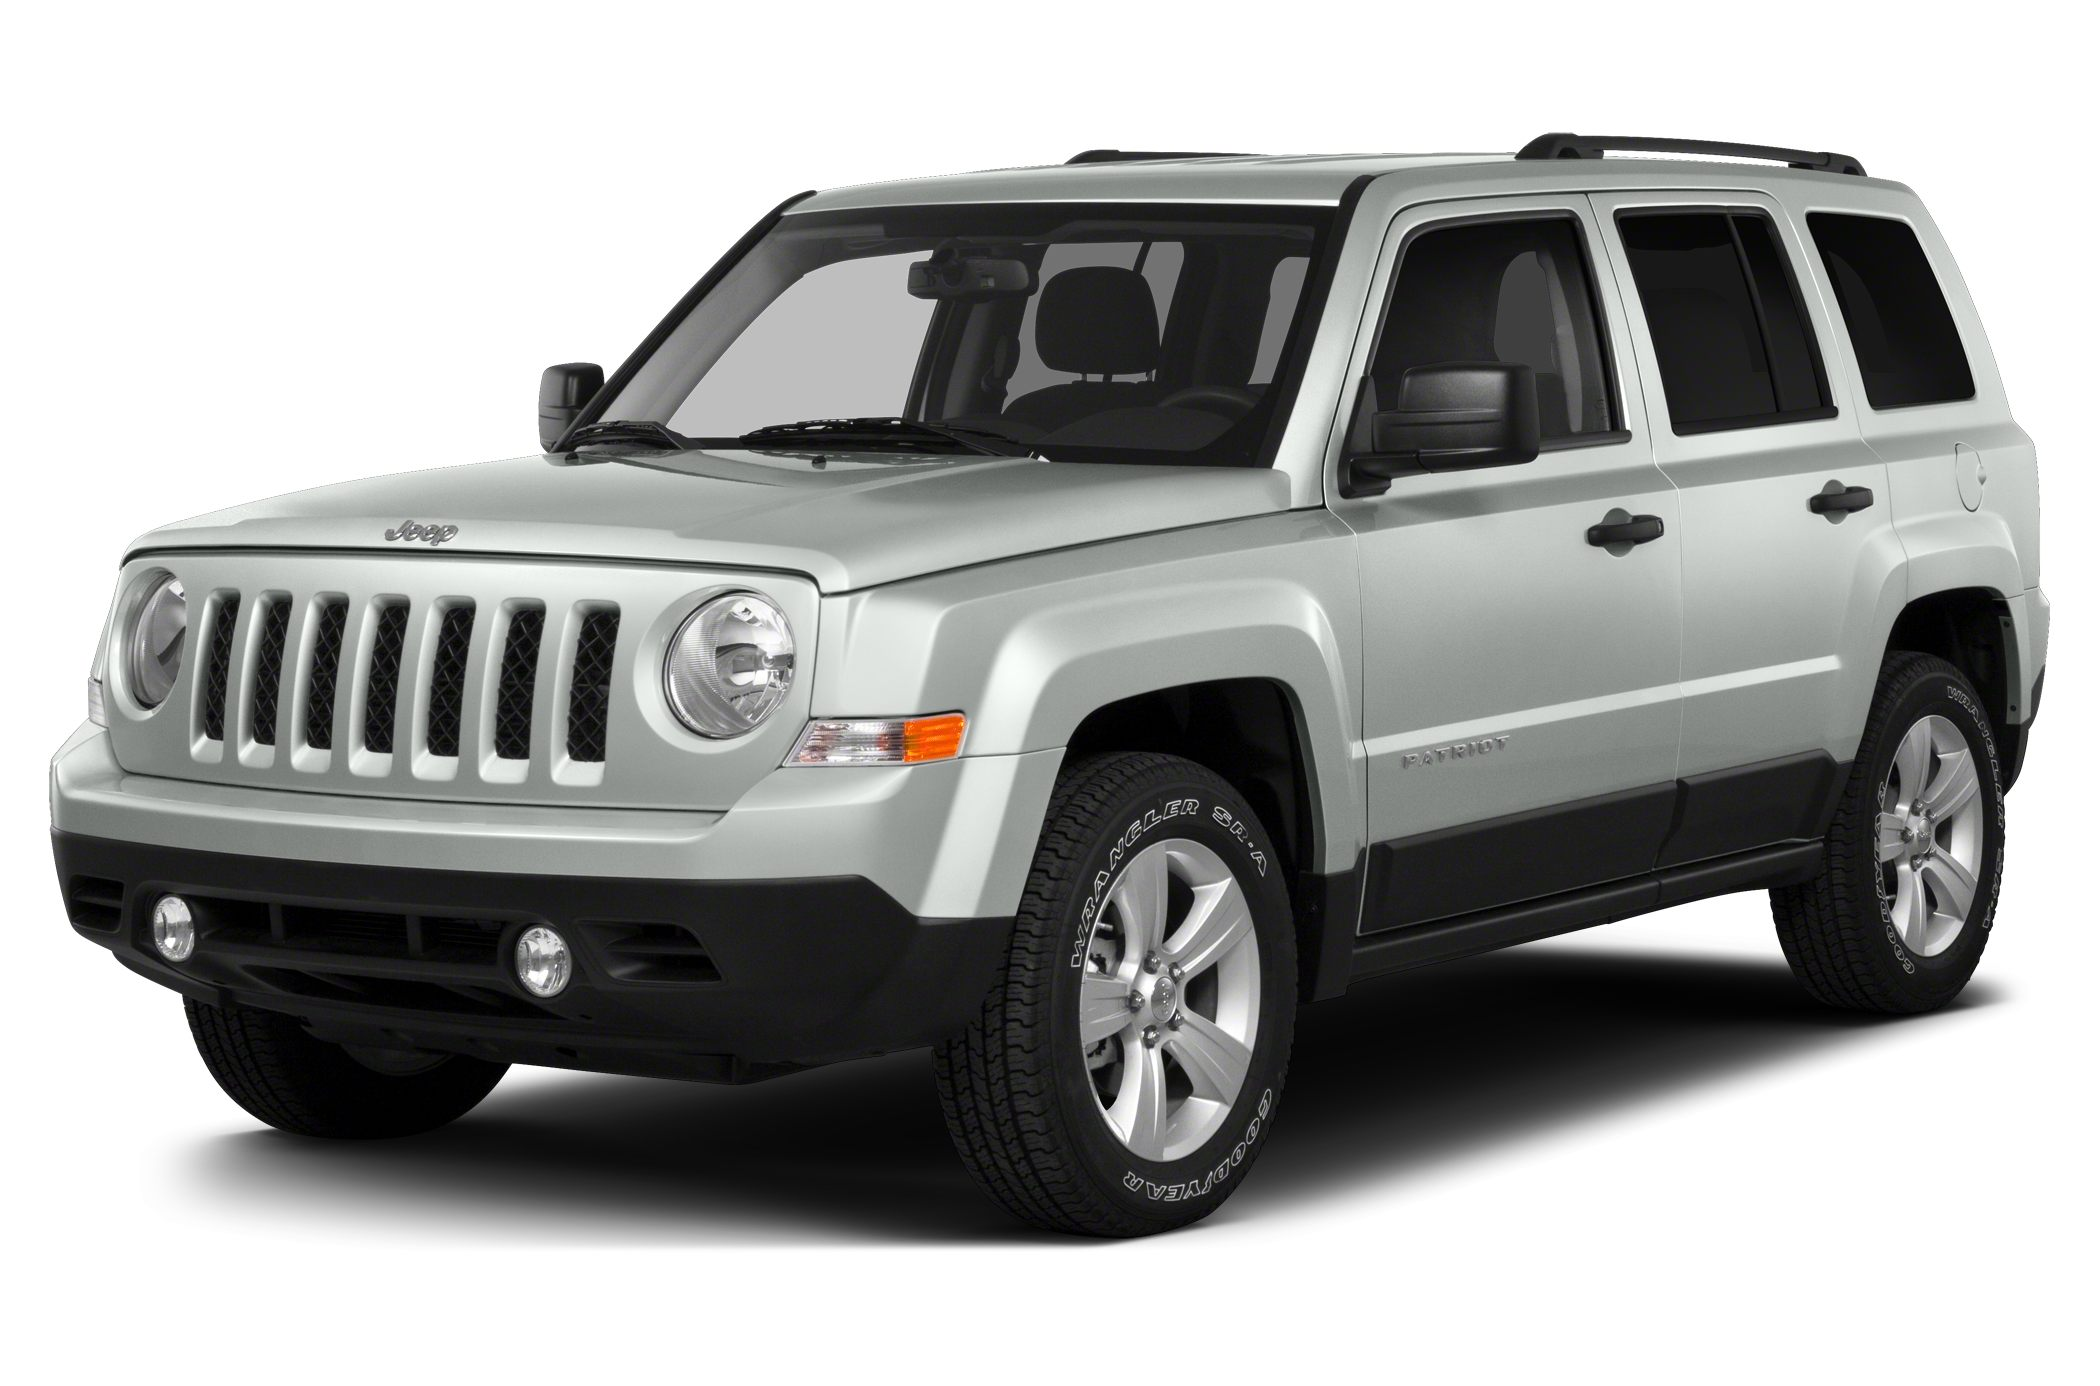 2014 Jeep Patriot Sport SUV for sale in Tacoma for $18,485 with 10 miles